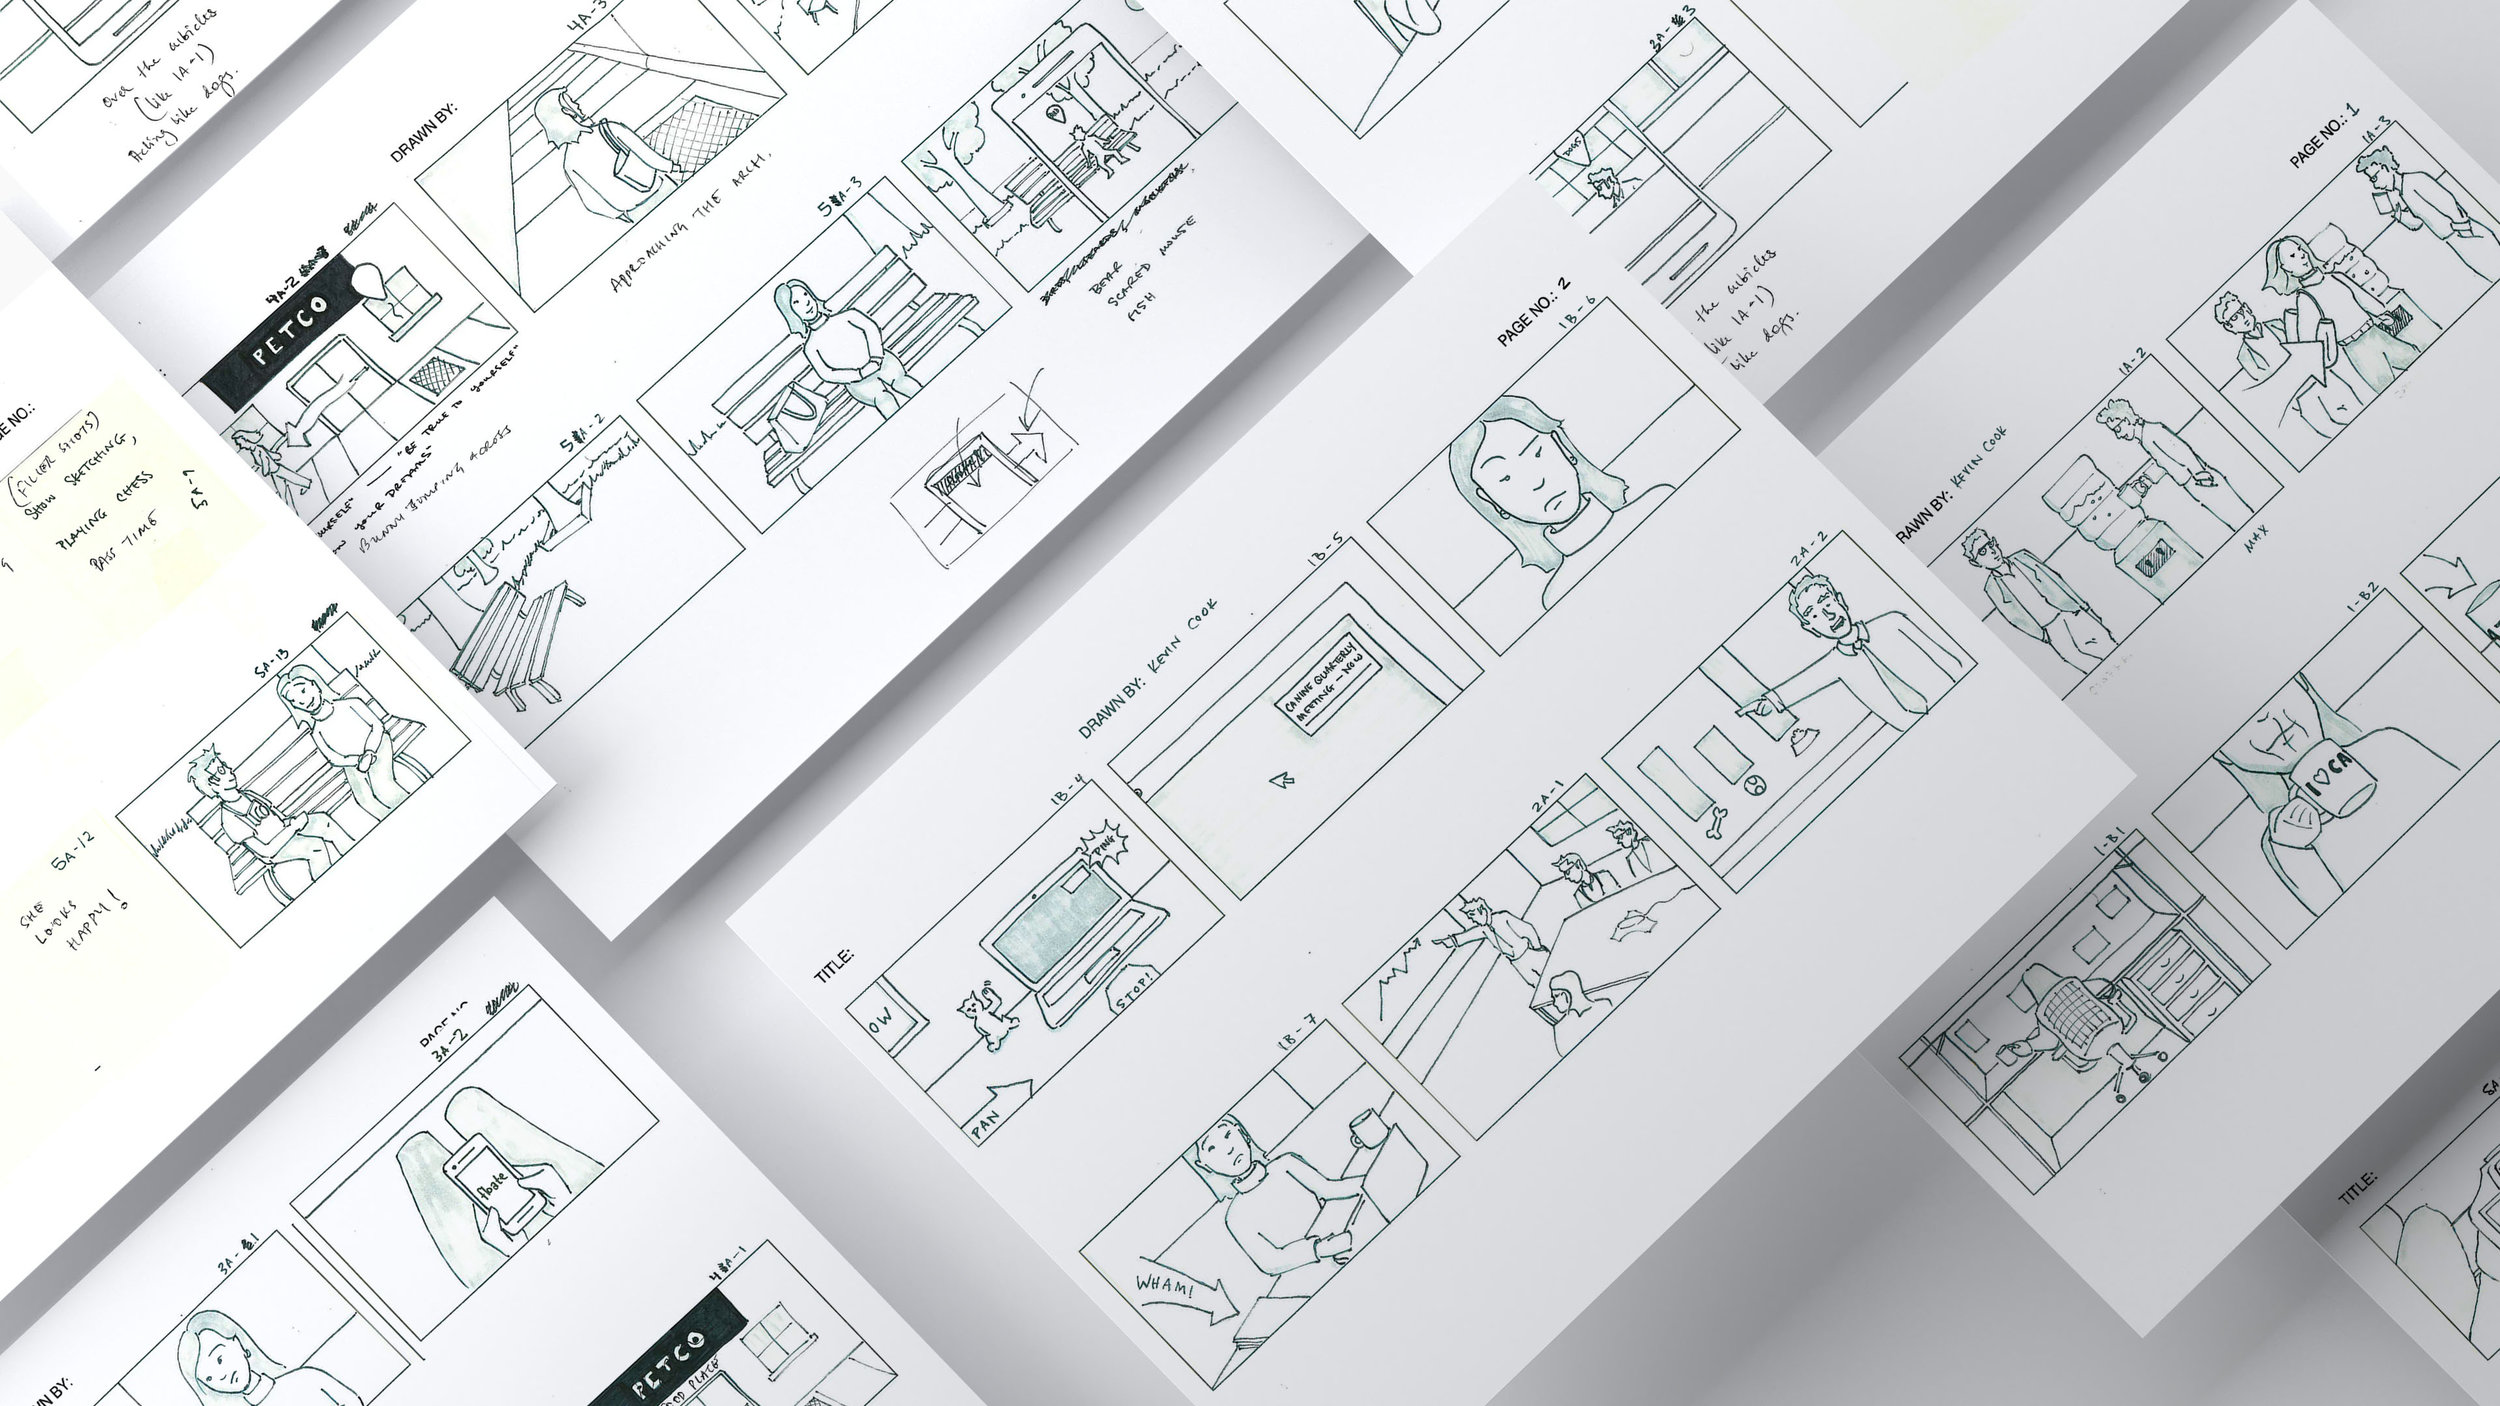 Storyboards sketched by Kevin Cook